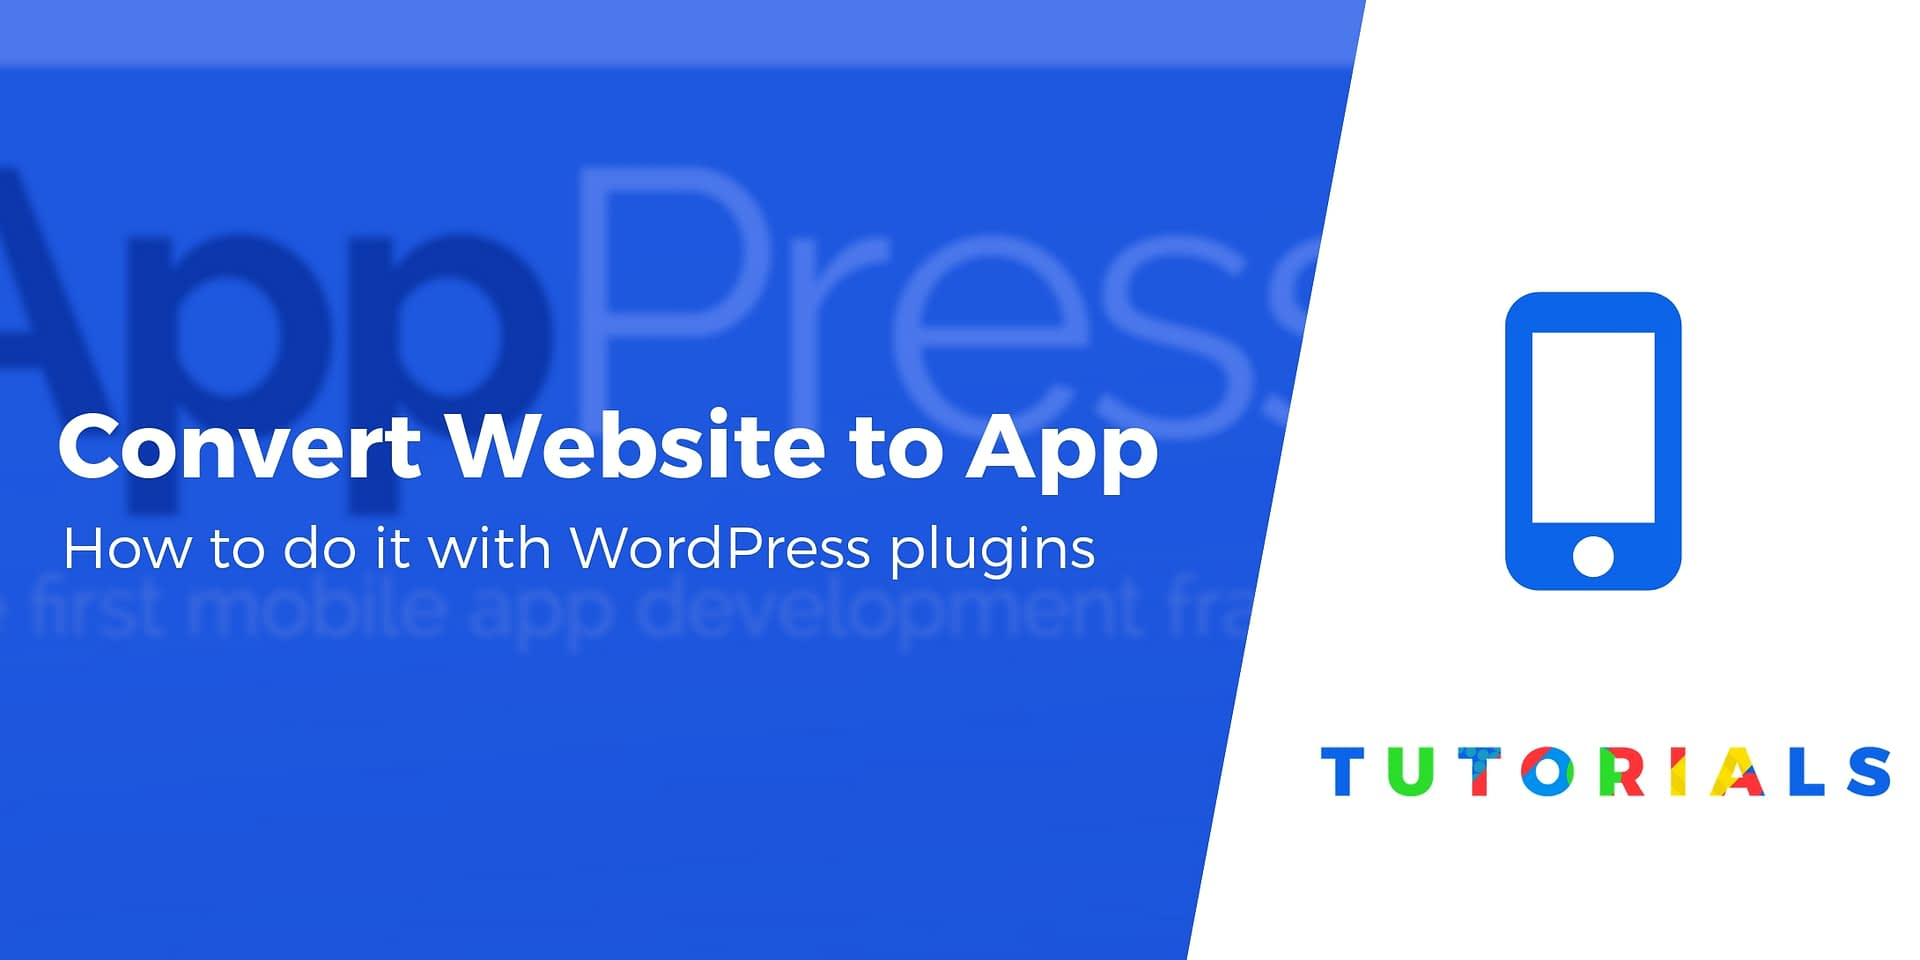 Convert Website to App: How to Do It With WordPress, Plus